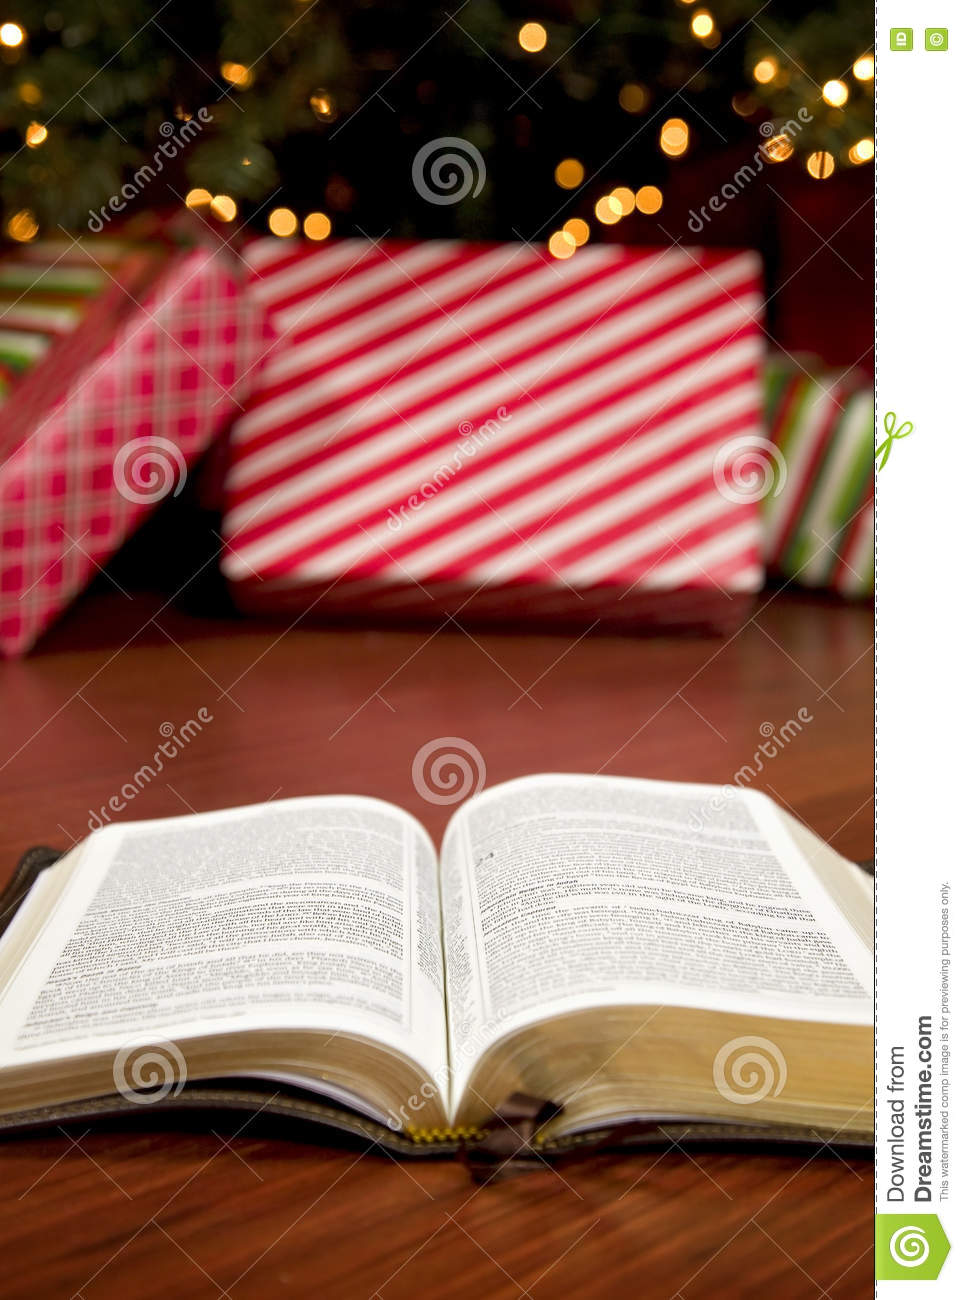 Bible In Front Of A Christmas Tree Stock Image - Image of open